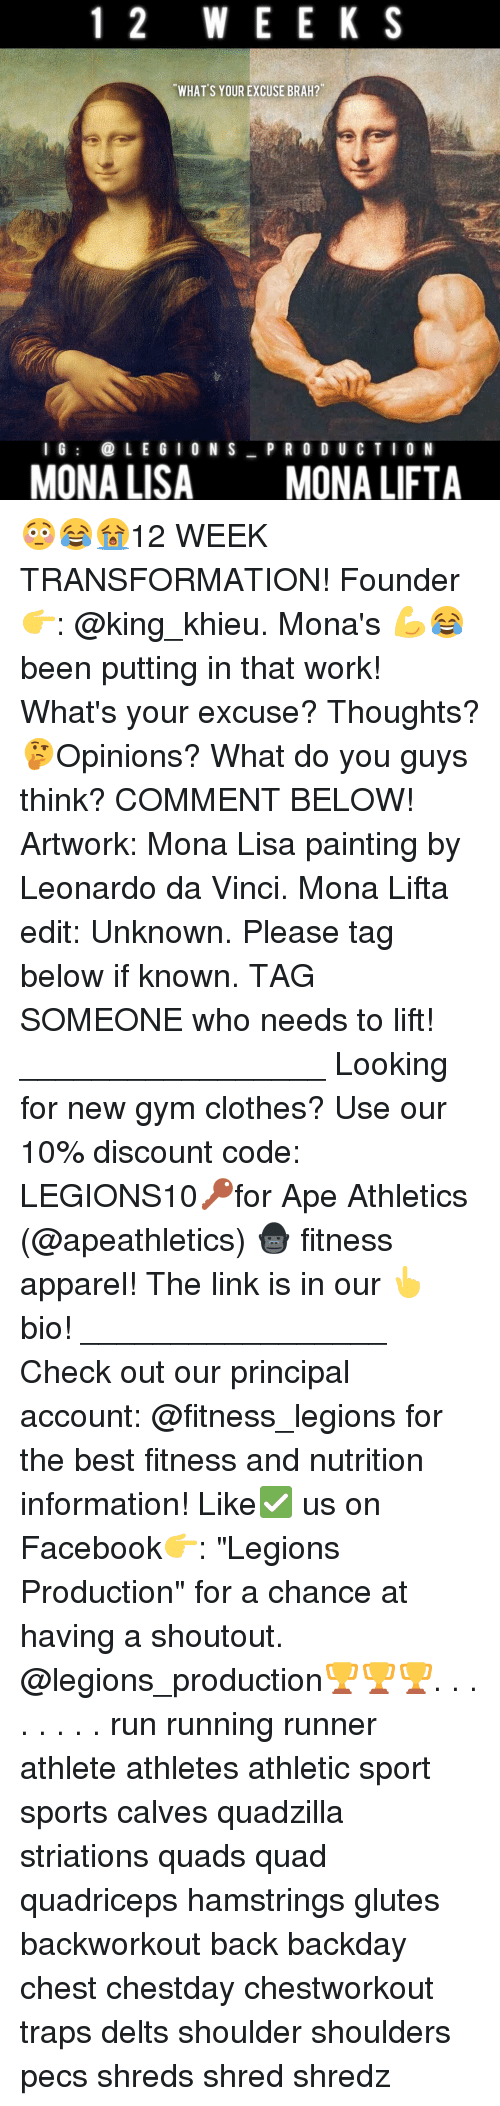 "Clothes, Facebook, and Gym: 1 2 W E E K S  WHAT S YOUR EXCUSE BRAH?  I G  LEGION S  P R O D U C T I O N  MONA LISA  MONA LIFTA 😳😂😭12 WEEK TRANSFORMATION! Founder 👉: @king_khieu. Mona's 💪😂 been putting in that work! What's your excuse? Thoughts? 🤔Opinions? What do you guys think? COMMENT BELOW! Artwork: Mona Lisa painting by Leonardo da Vinci. Mona Lifta edit: Unknown. Please tag below if known. TAG SOMEONE who needs to lift! _________________ Looking for new gym clothes? Use our 10% discount code: LEGIONS10🔑for Ape Athletics (@apeathletics) 🦍 fitness apparel! The link is in our 👆 bio! _________________ Check out our principal account: @fitness_legions for the best fitness and nutrition information! Like✅ us on Facebook👉: ""Legions Production"" for a chance at having a shoutout. @legions_production🏆🏆🏆. . . . . . . . run running runner athlete athletes athletic sport sports calves quadzilla striations quads quad quadriceps hamstrings glutes backworkout back backday chest chestday chestworkout traps delts shoulder shoulders pecs shreds shred shredz"